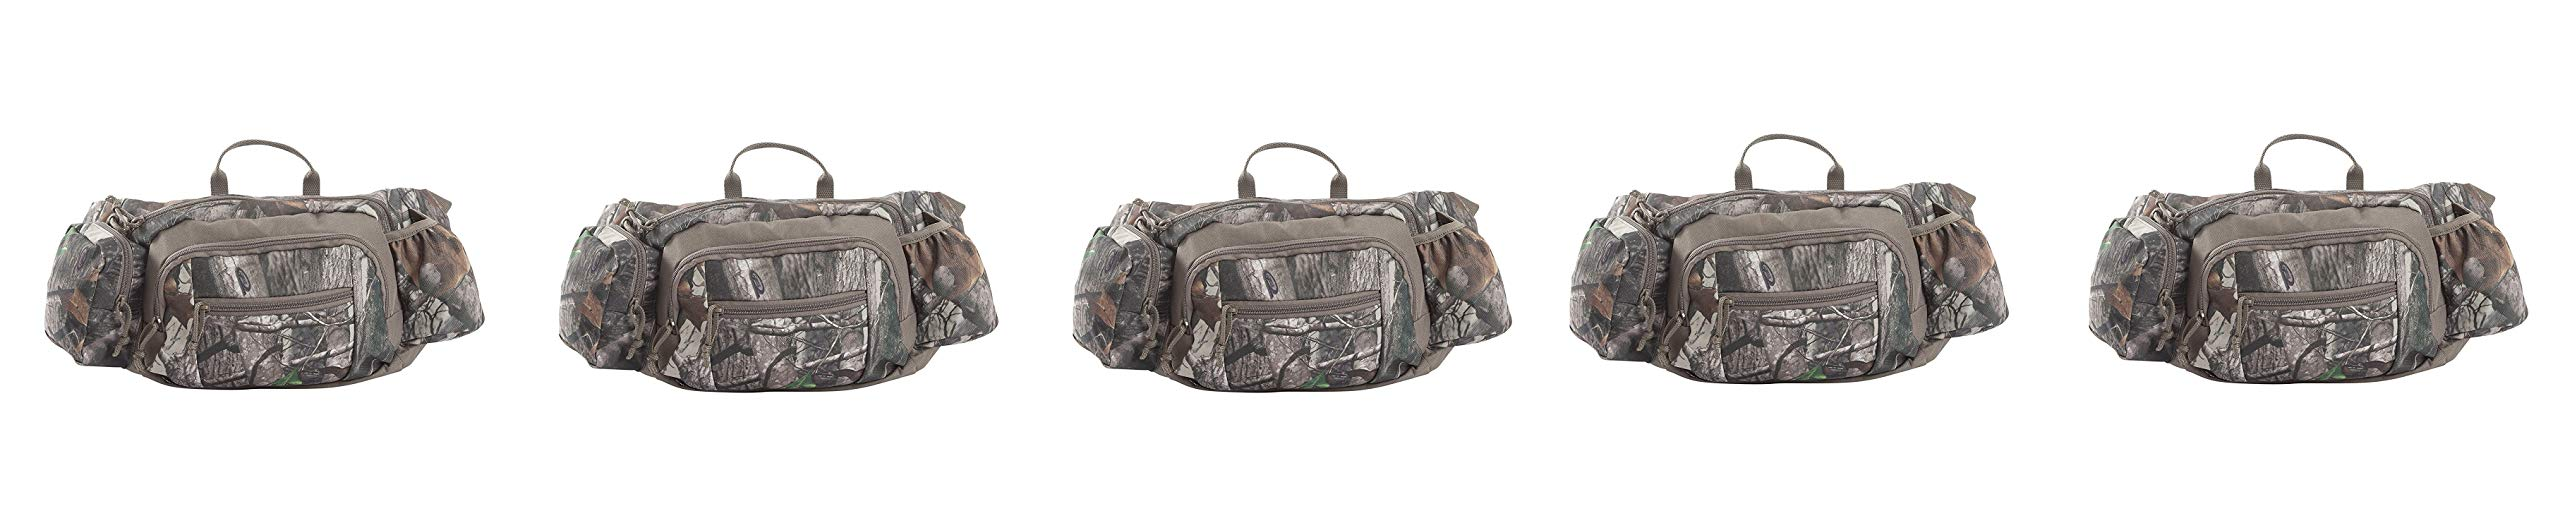 Allen Crusade Camo Hunting Waist Pack, 600 Cubic Inches, Next G2 (Pack of 5)